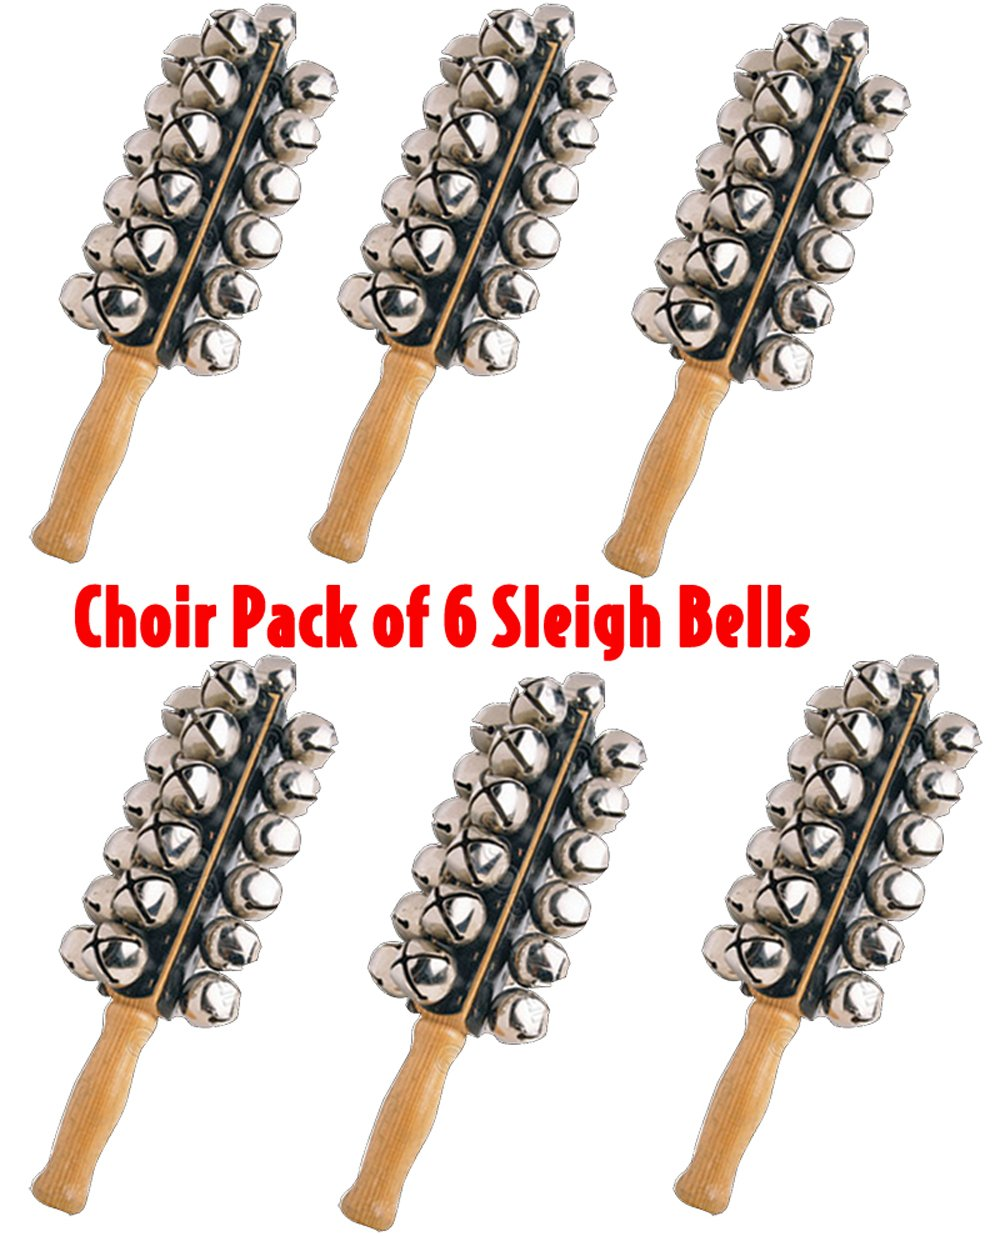 Performance Plus SBL-25-6 Choir Pack of 6 Includes 6 Professional, 25 Large Jingle Sleigh Bells on Maple Handle by Performance Plus